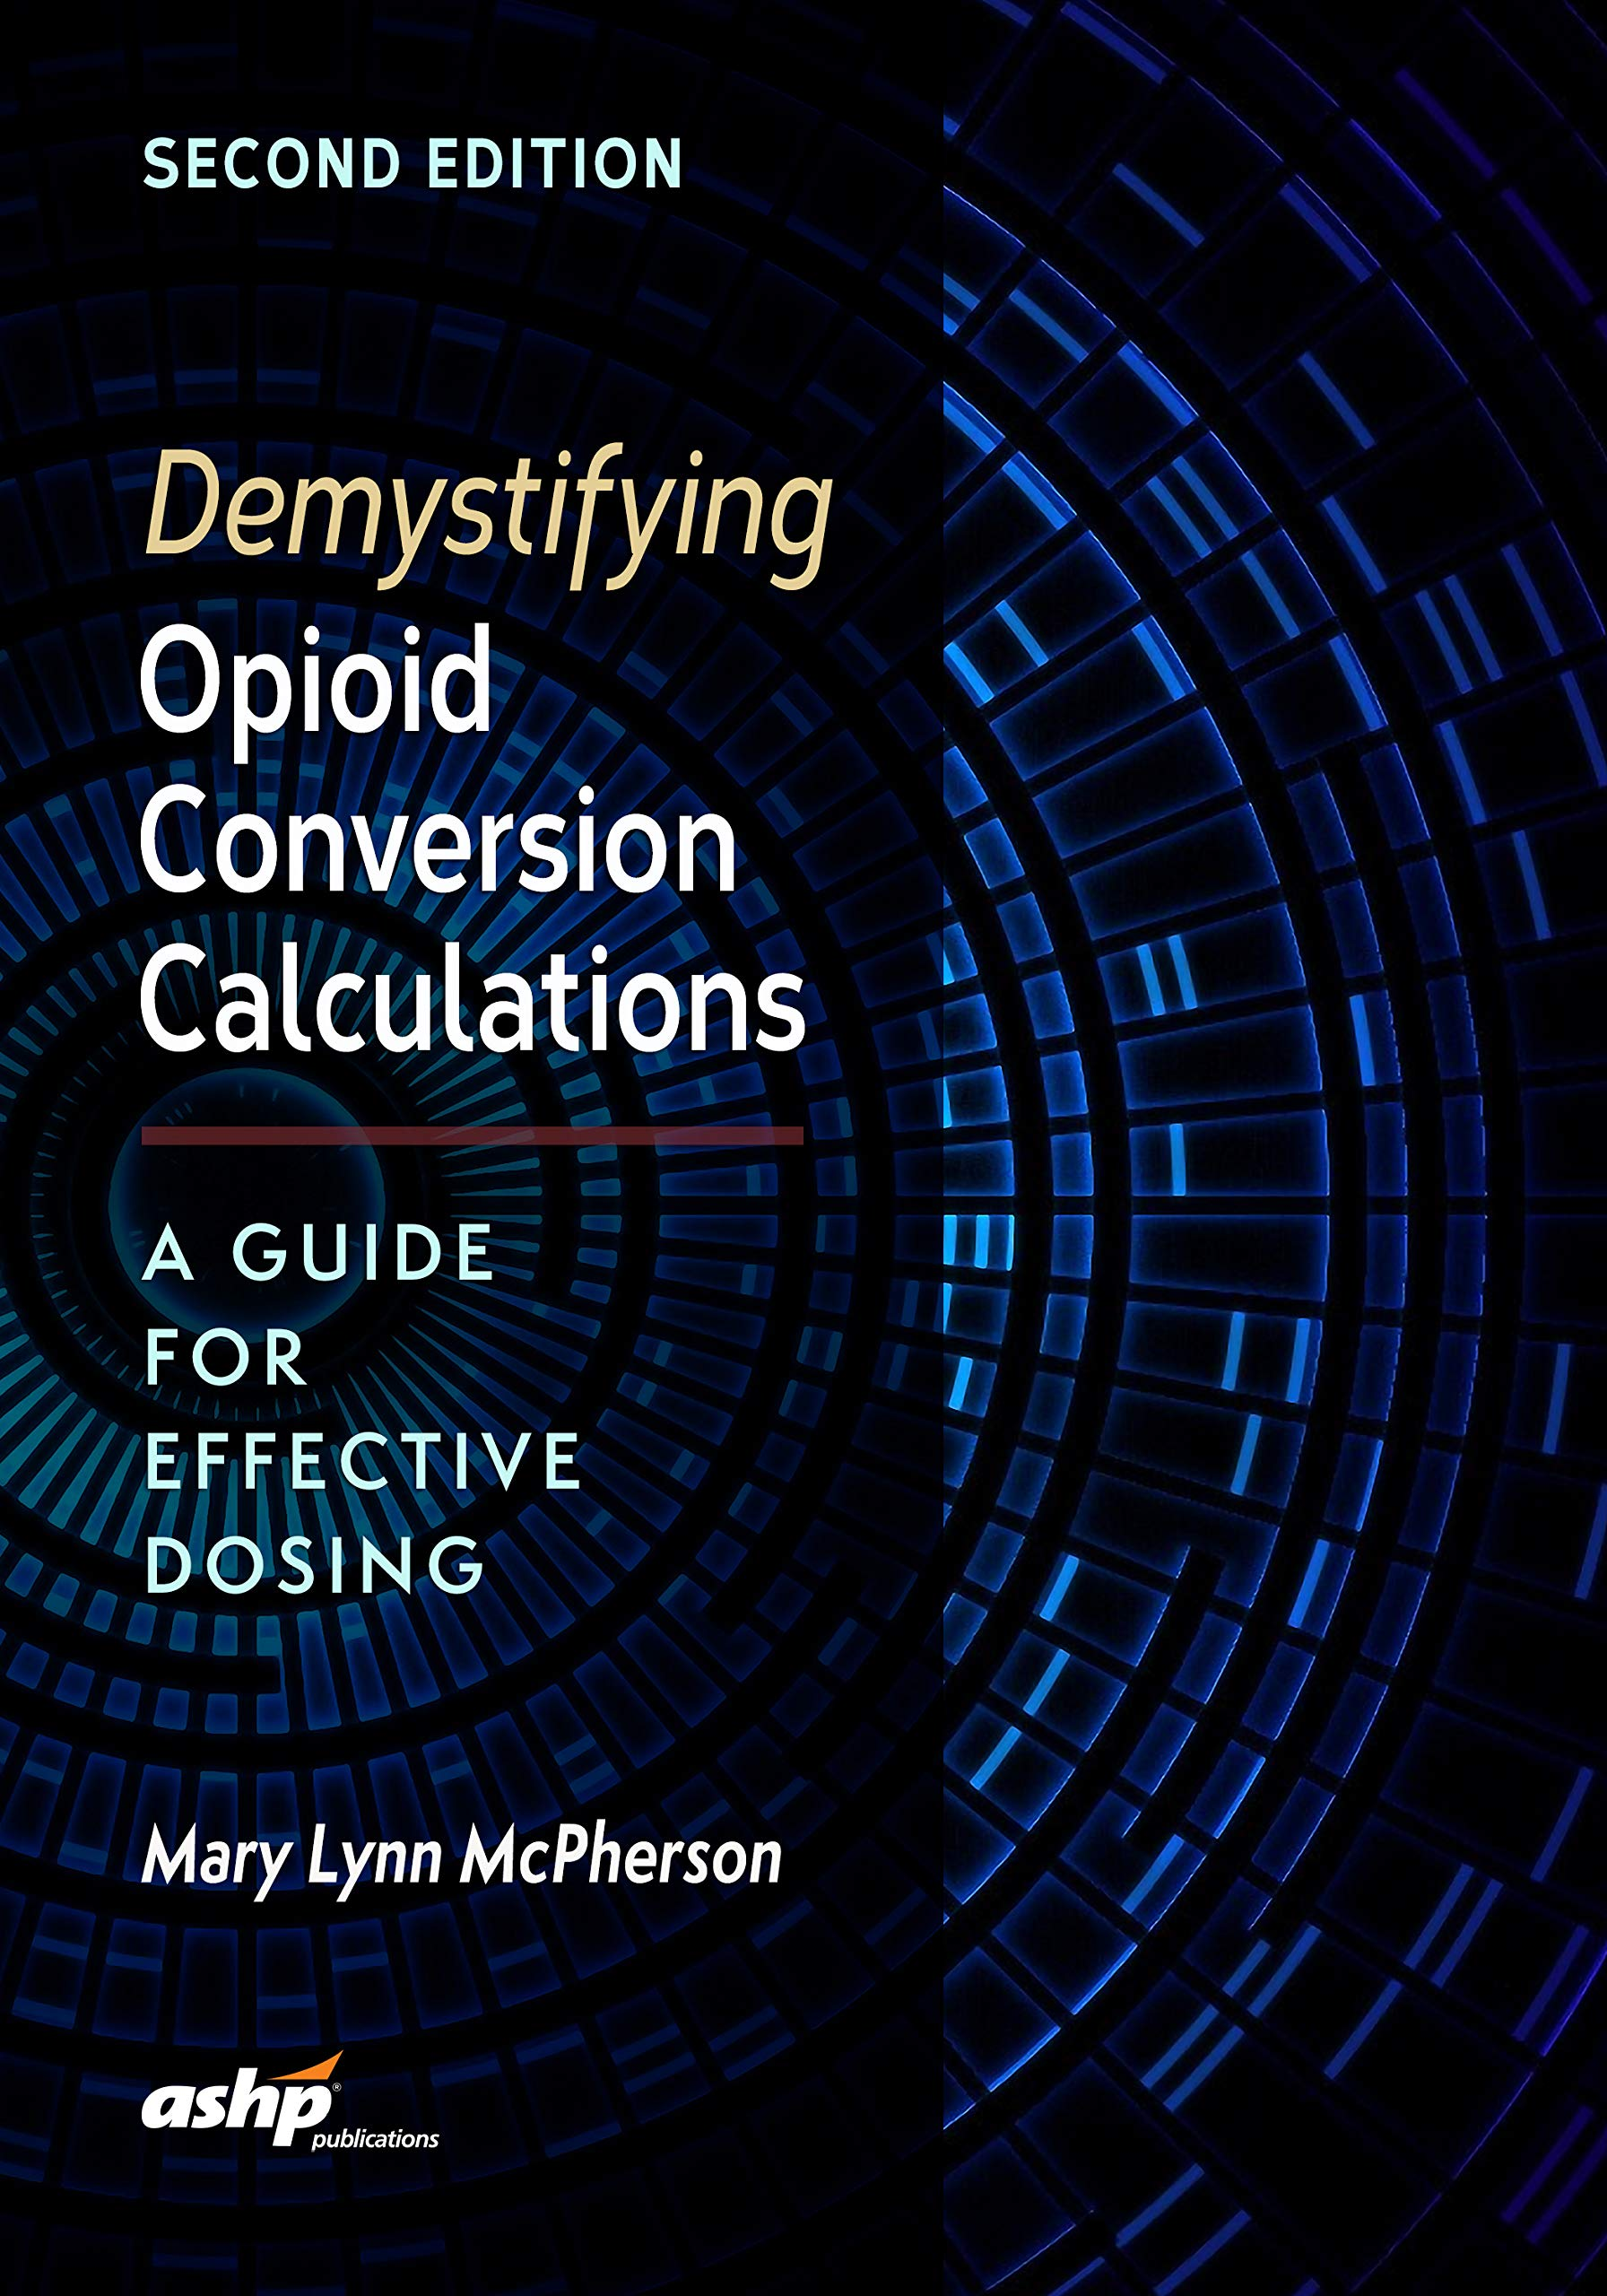 Demystifying Opioid Conversion Calculations, 2nd Edition